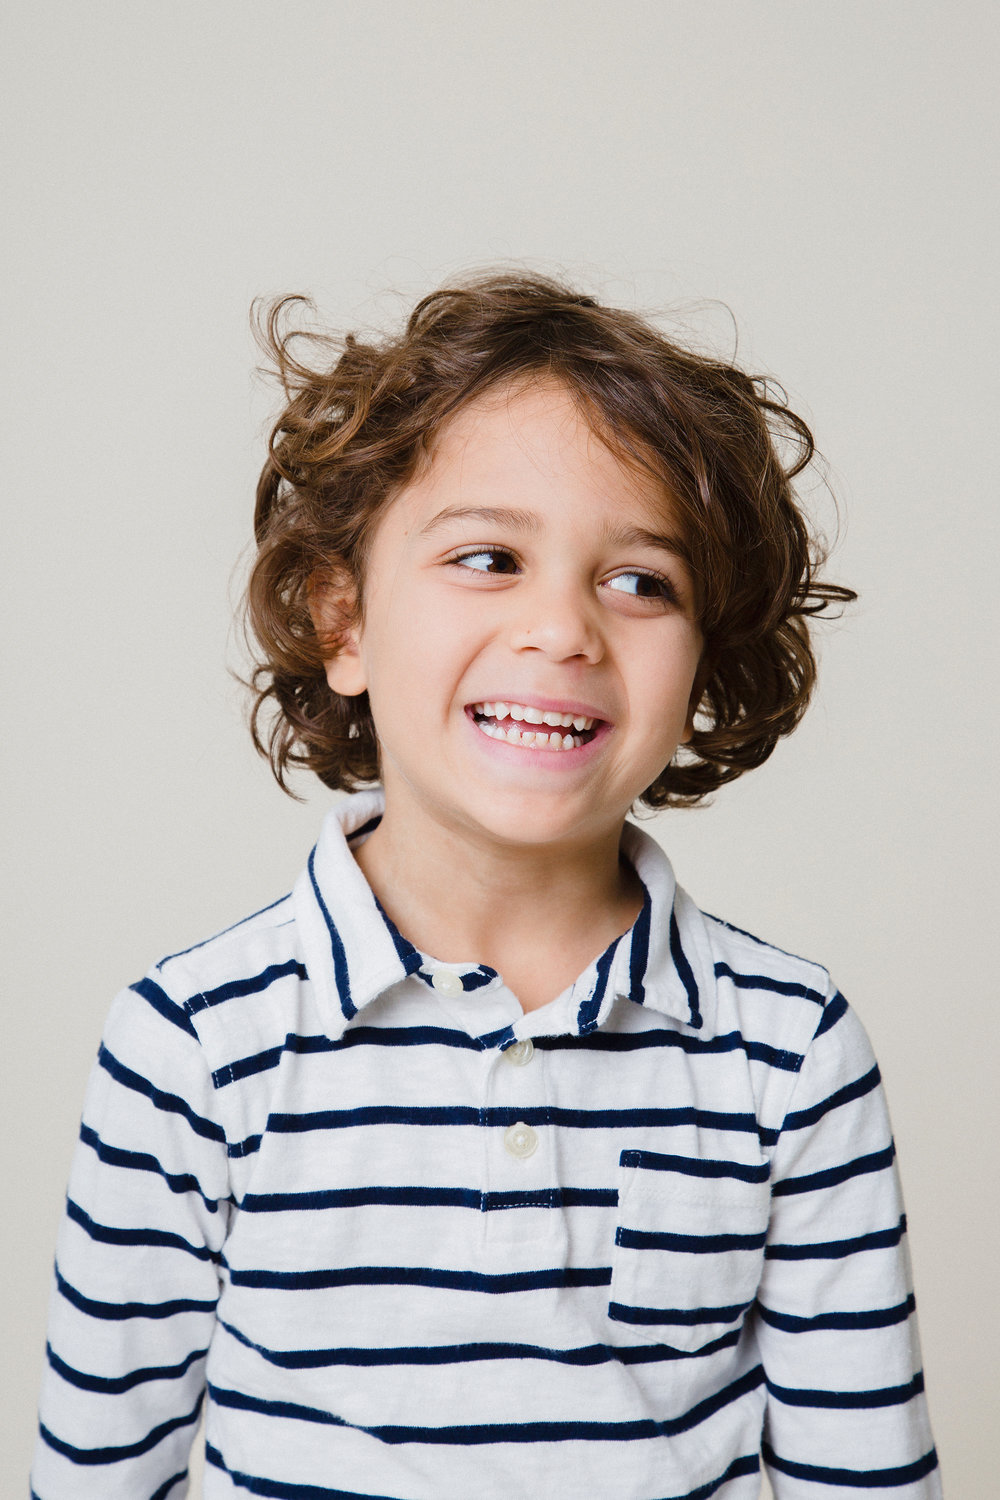 Preschool Headshots